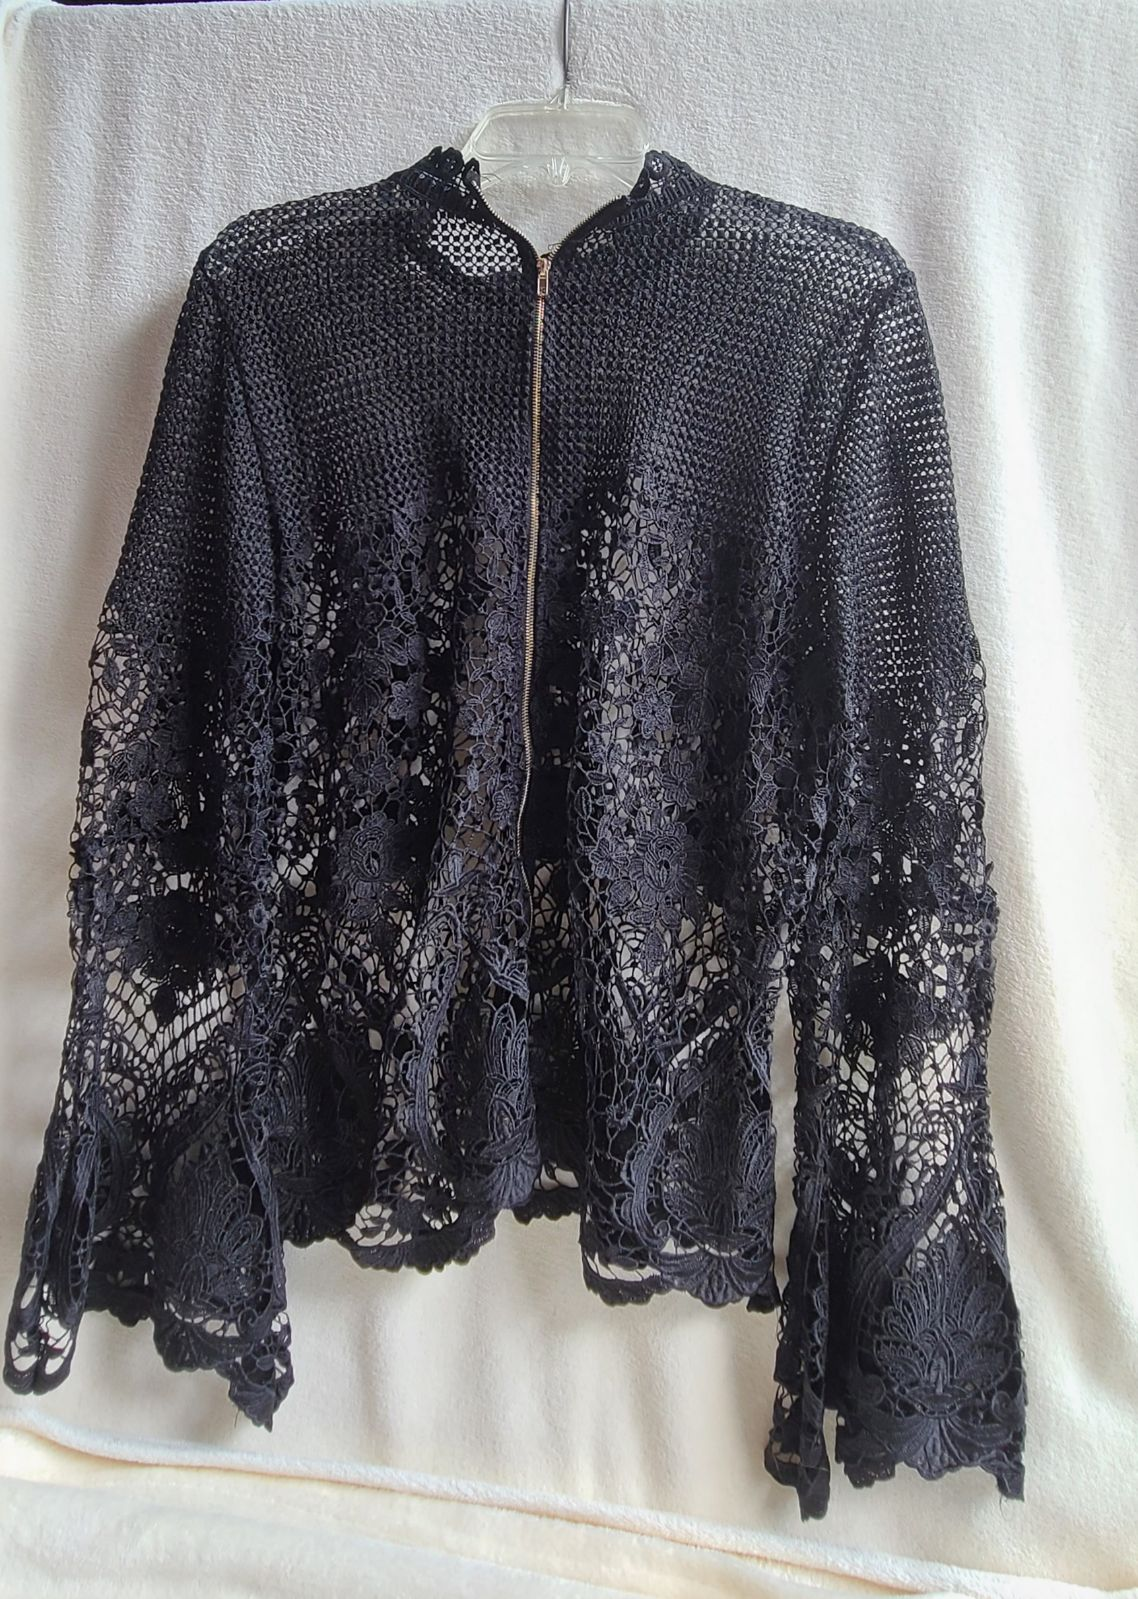 Project Runway Lace Jackets